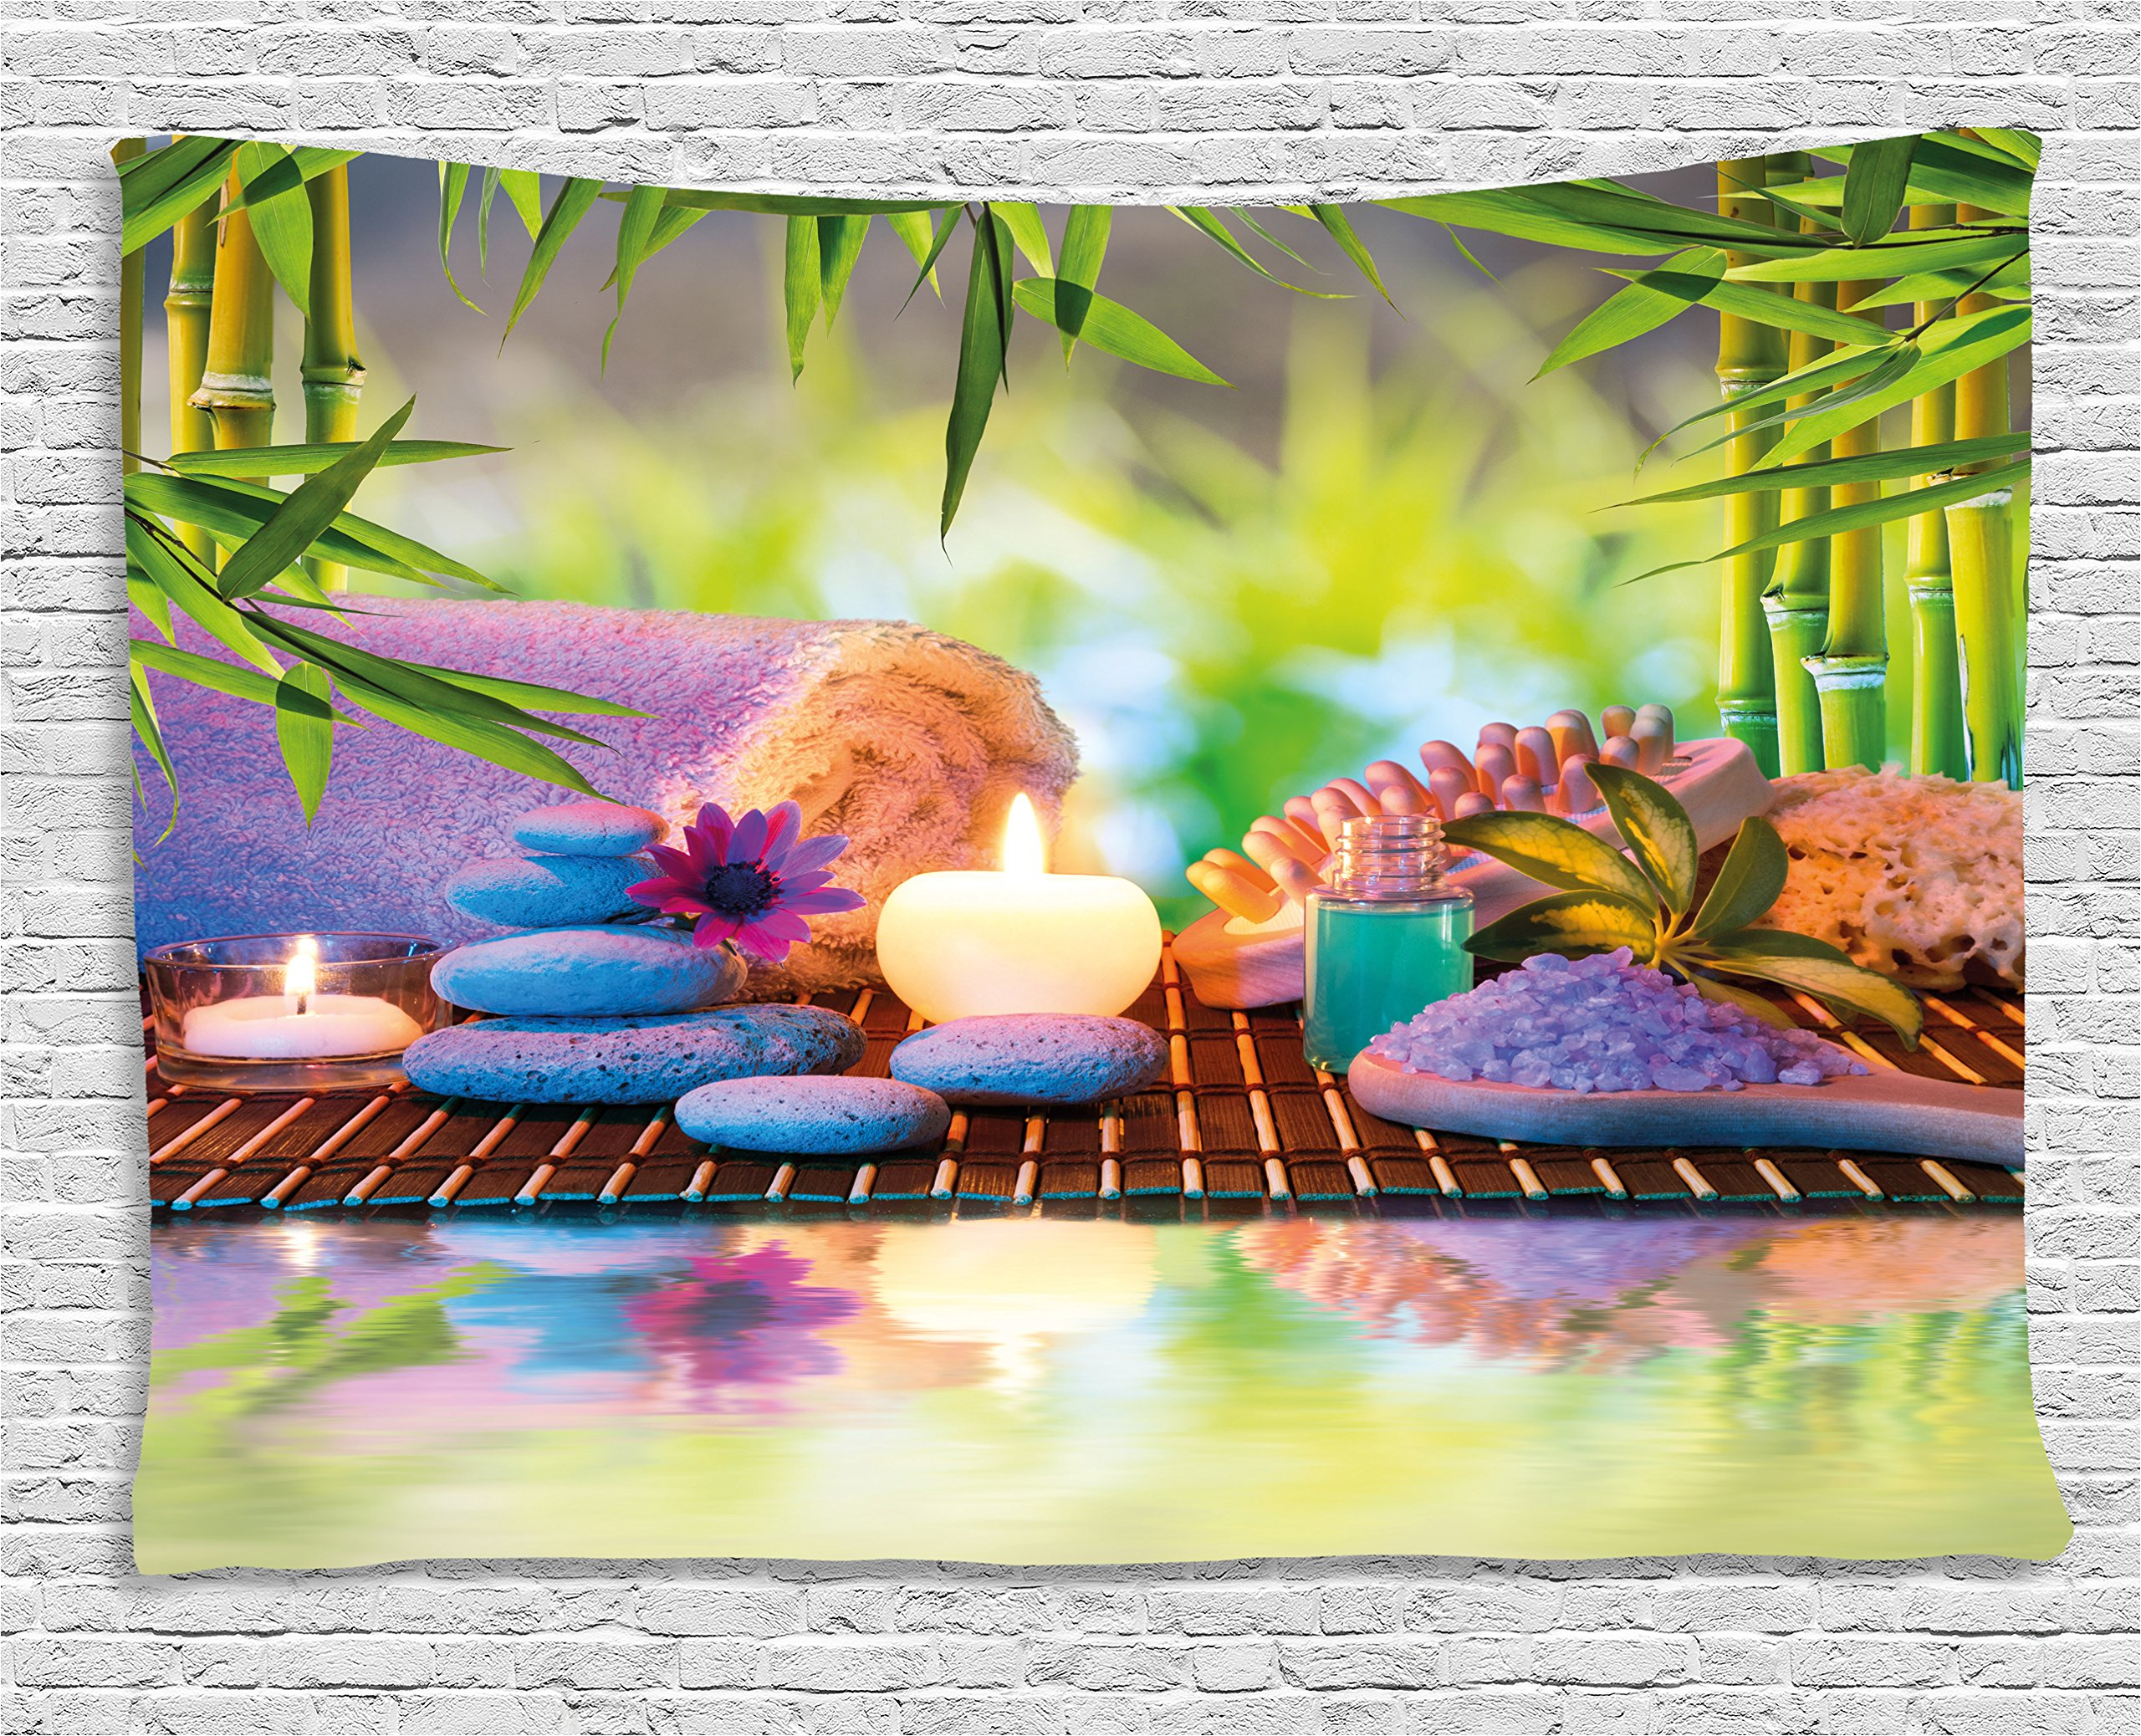 Ambesonne Spa Tapestry, Stones with Candles Spiritual Eastern Yoga Relaxation Meditation Chakra Bamboos Print, Wall Hanging for Bedroom Living Room Dorm, 60 W X 40 L inches, Multicolor